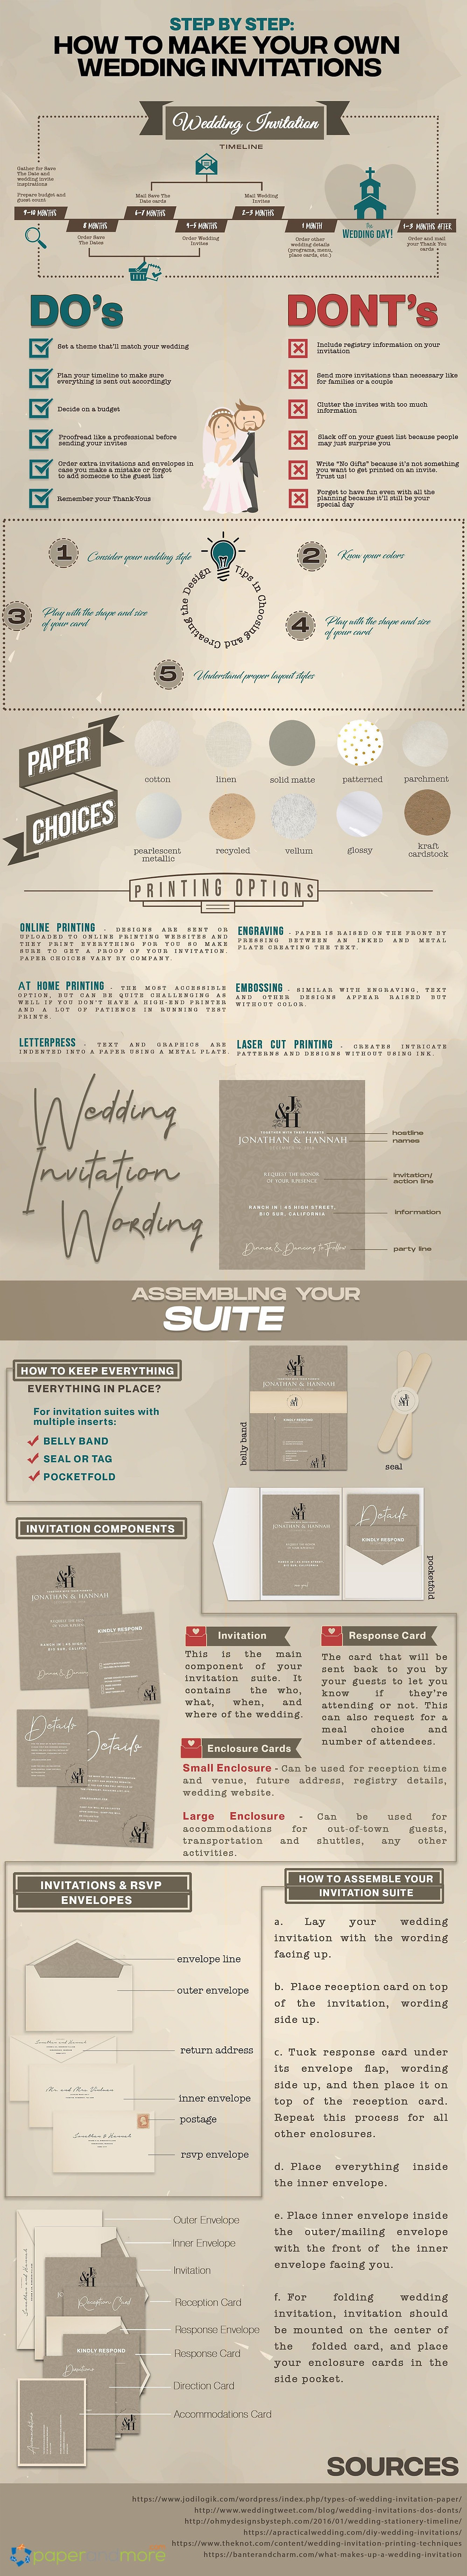 Step-by-Step: How to Make Your Own Wedding Invitations